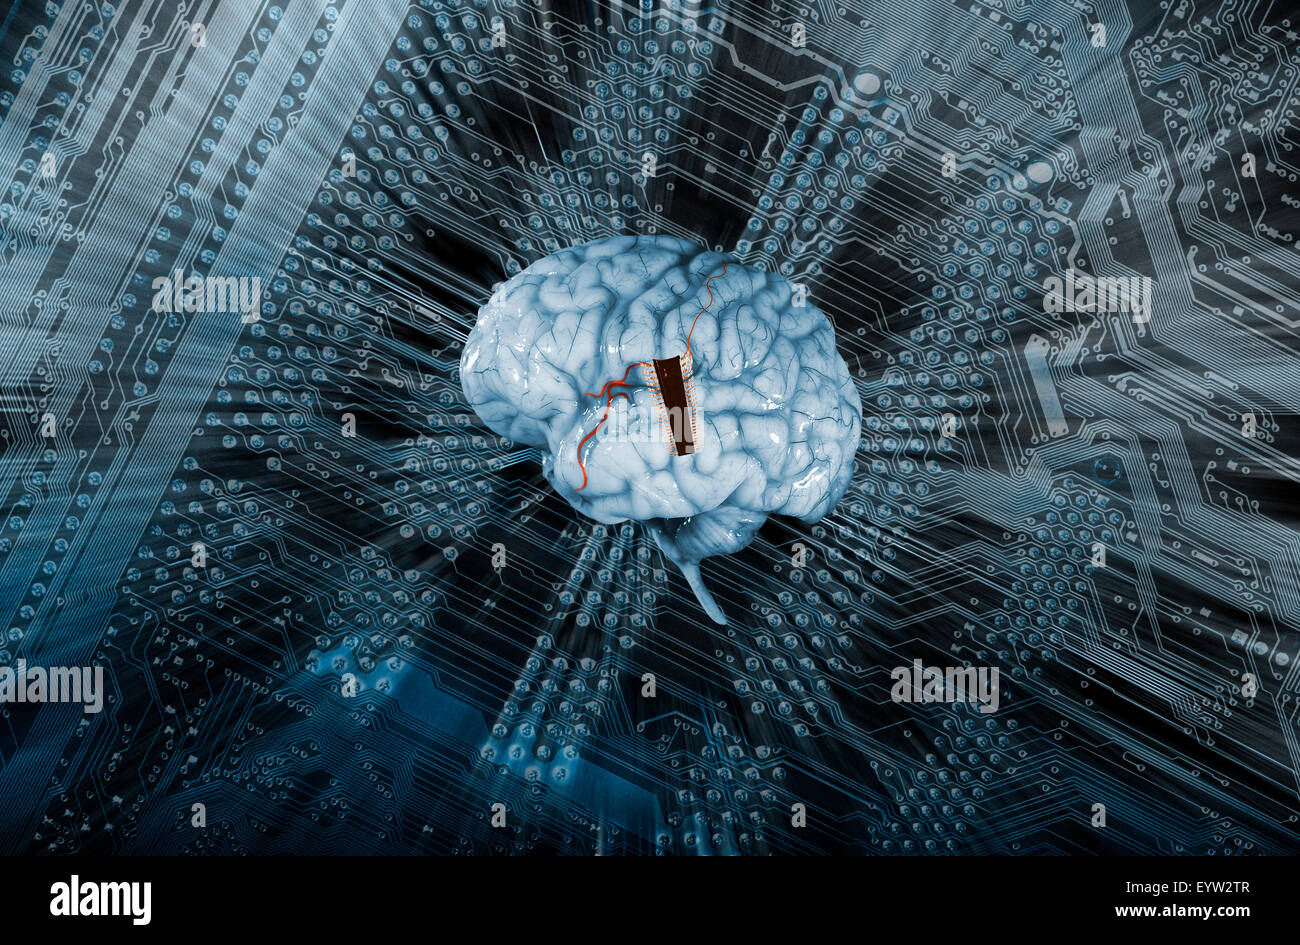 artificial intelligence, brain and computer - Stock Image